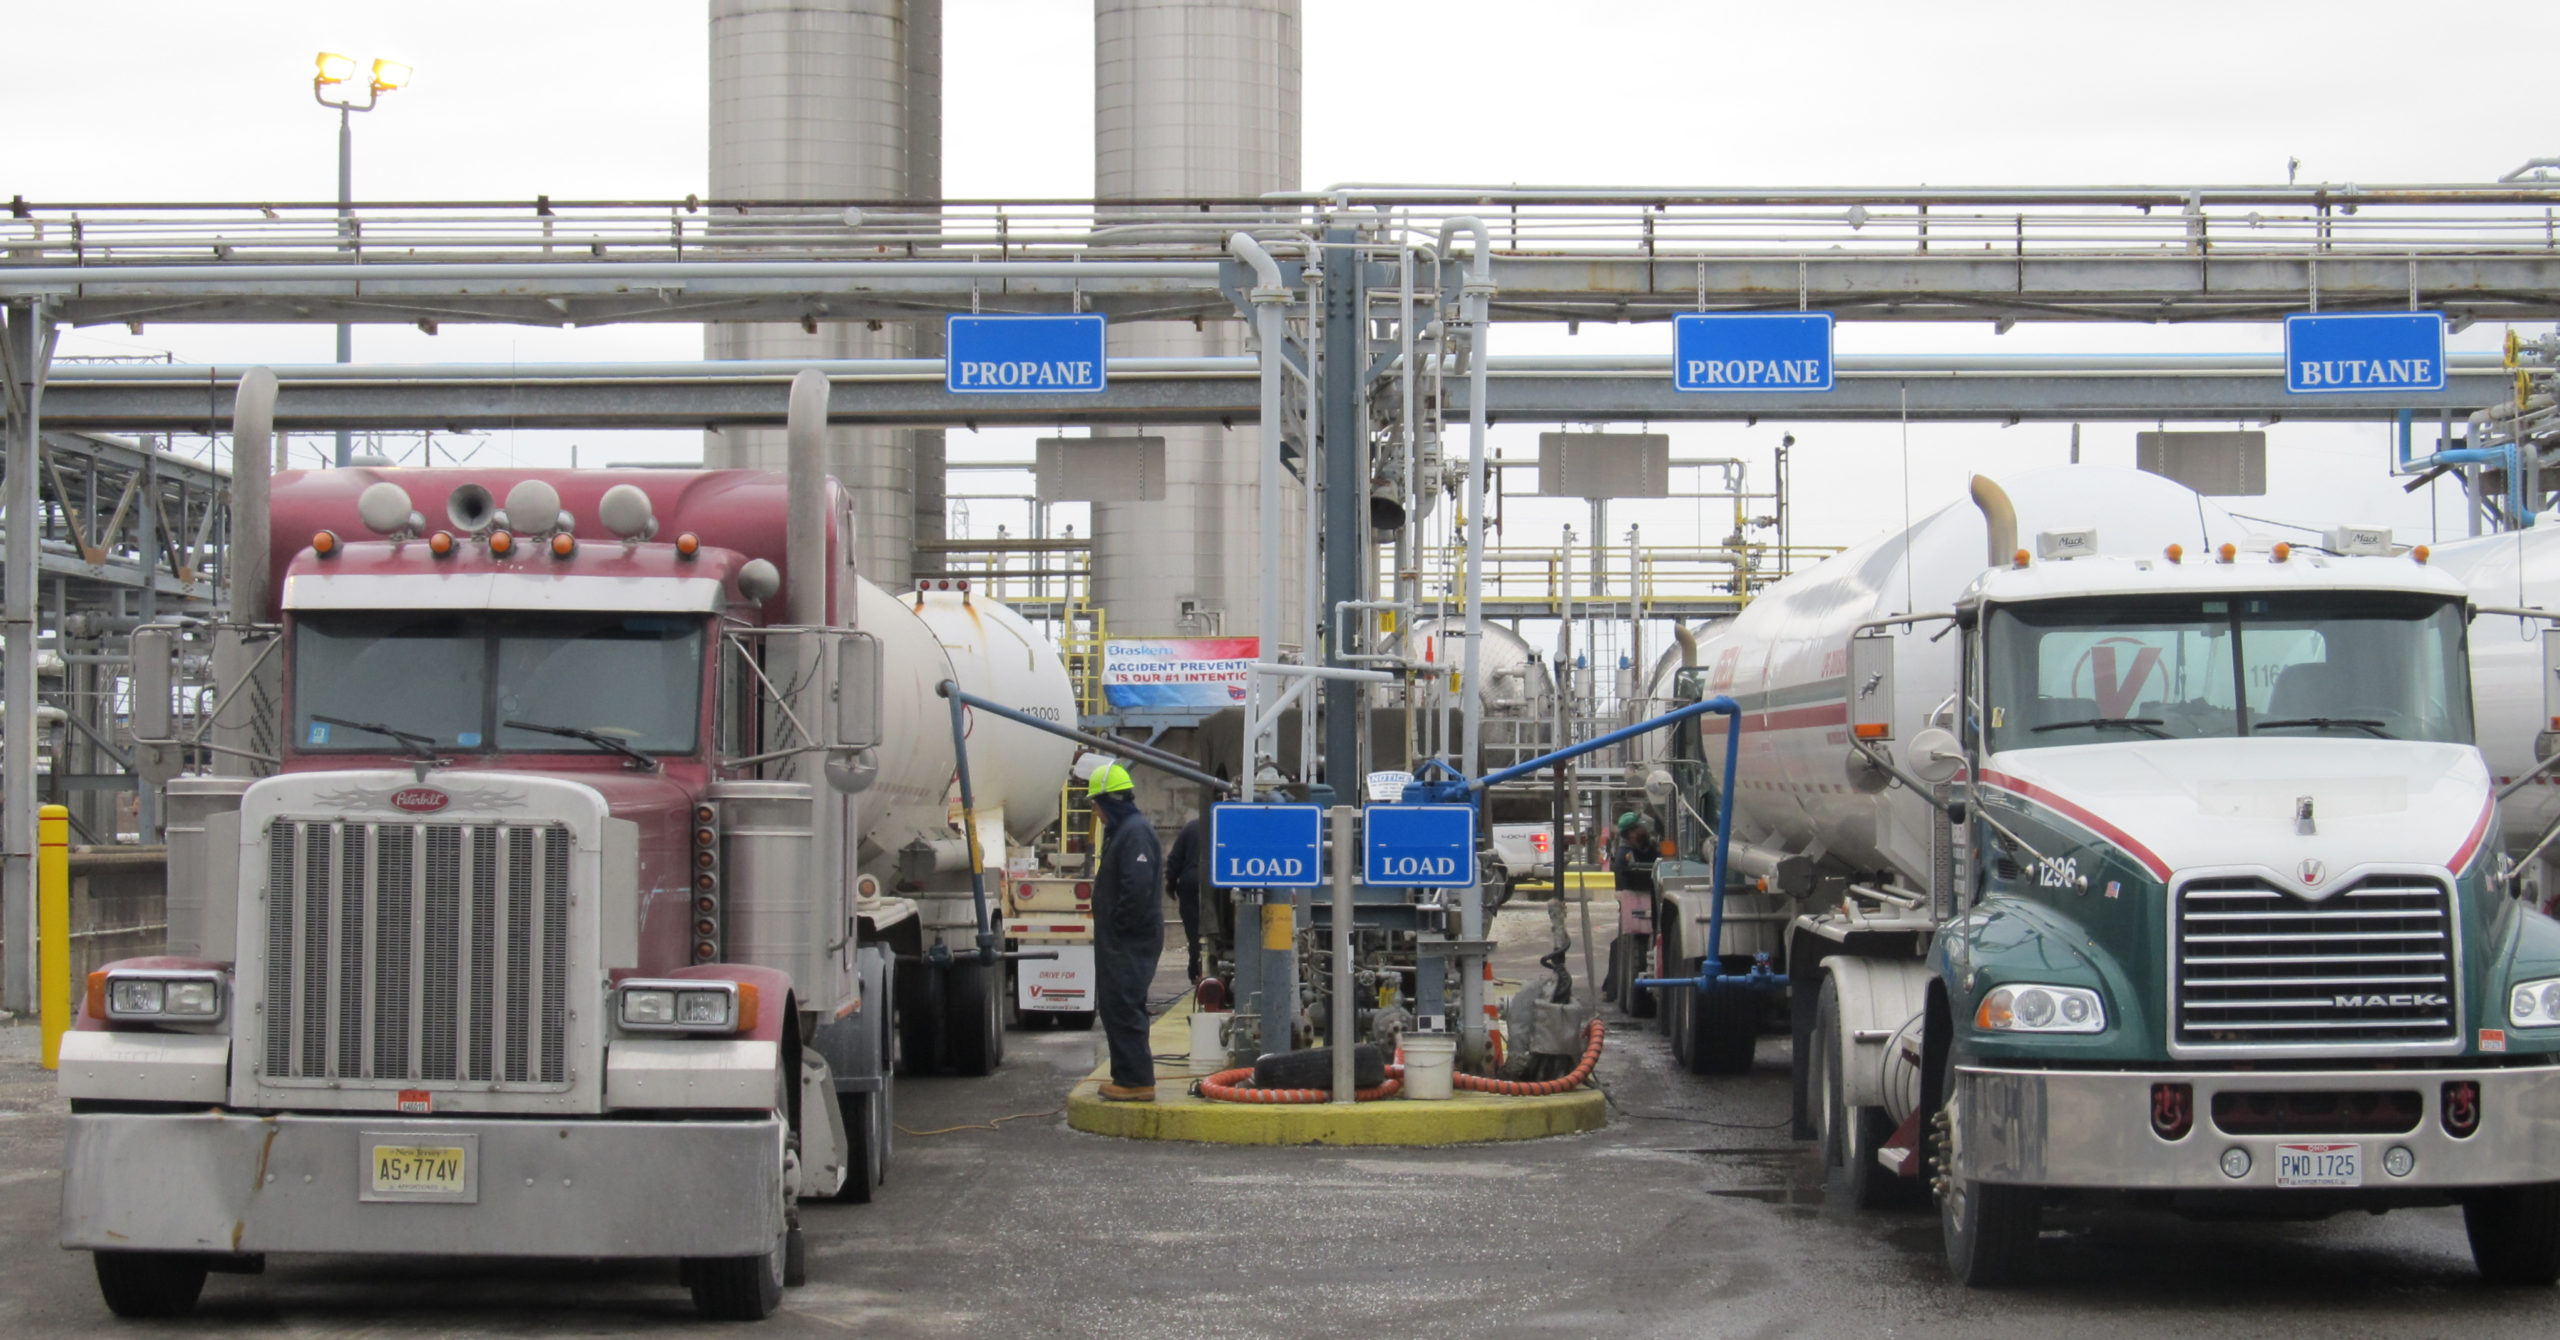 SP19 TruckRacksWiner FB scaled - Propane Sold at Marcus Hook Truck Racks Supplies Local, National Demand